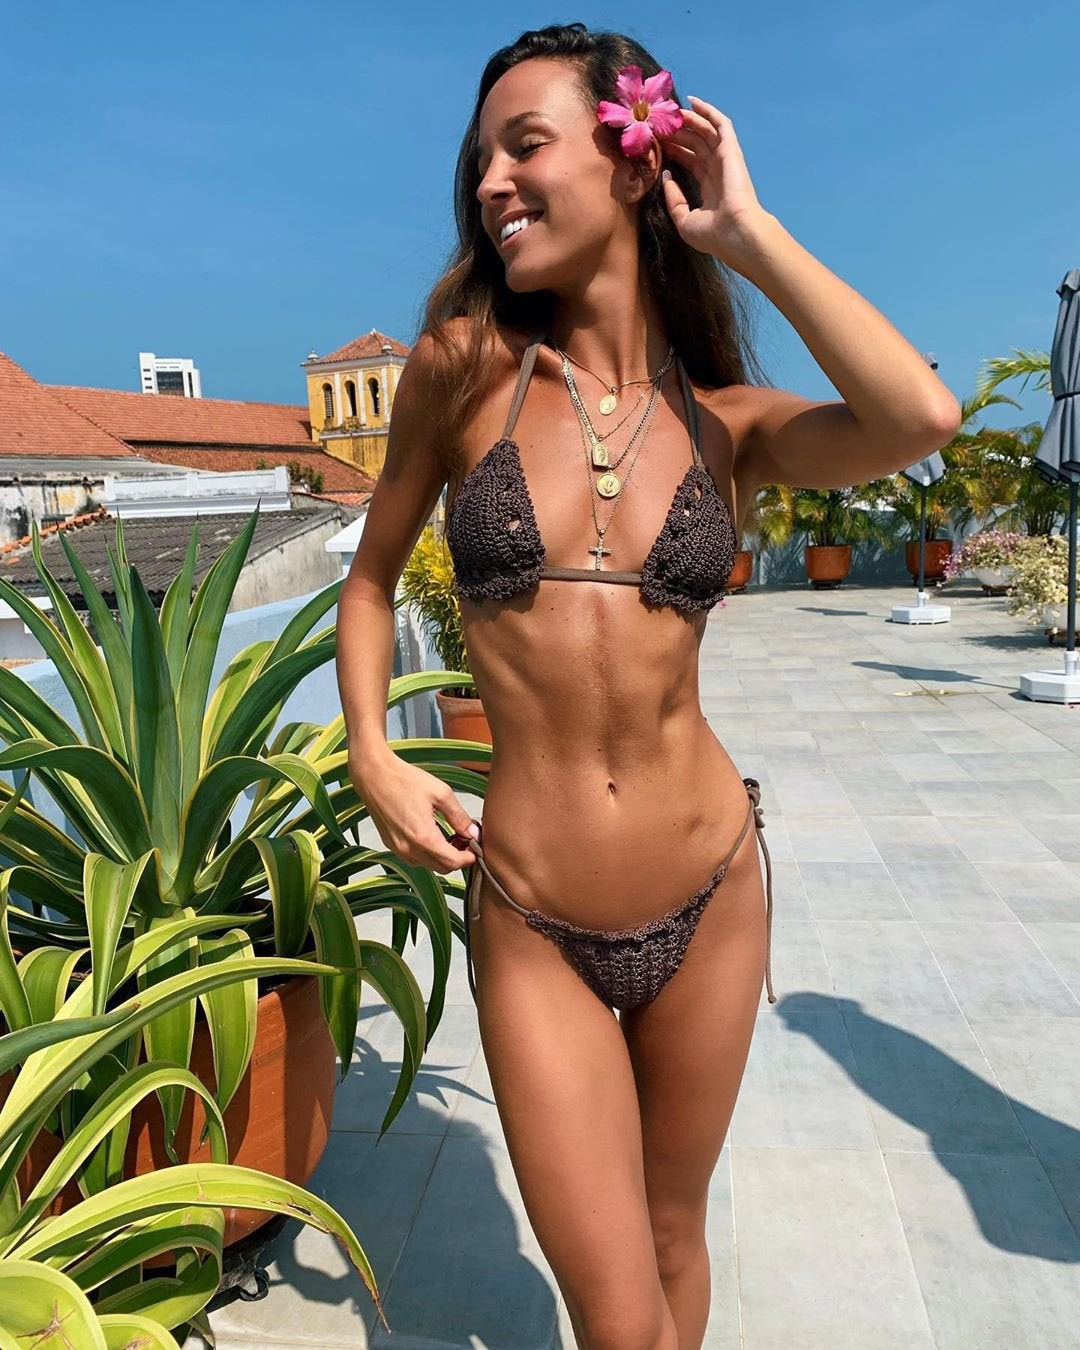 Sexy Carlota Ensenat waiting to get leid With 6 Pack Abs